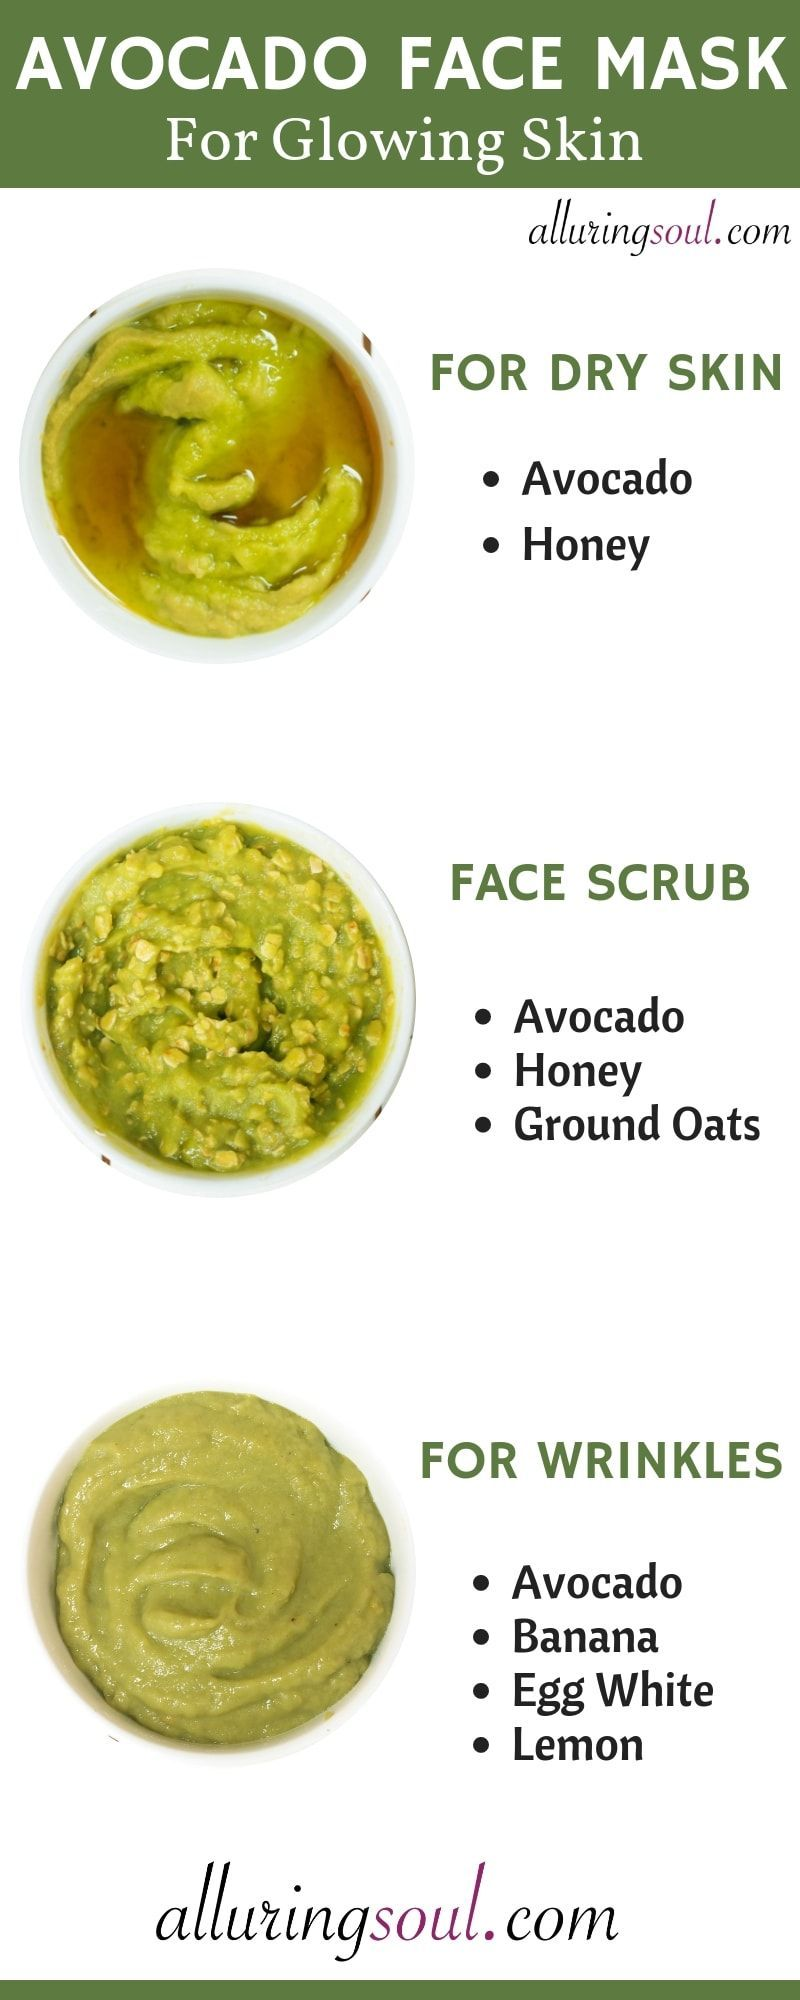 Apply Avocado Face Mask To Get Healthy And Glowing Skin Avocado Treats Wrinkles Dry Skin And Also Prev Avocado Face Mask Acne Face Mask Face Mask For Pimples